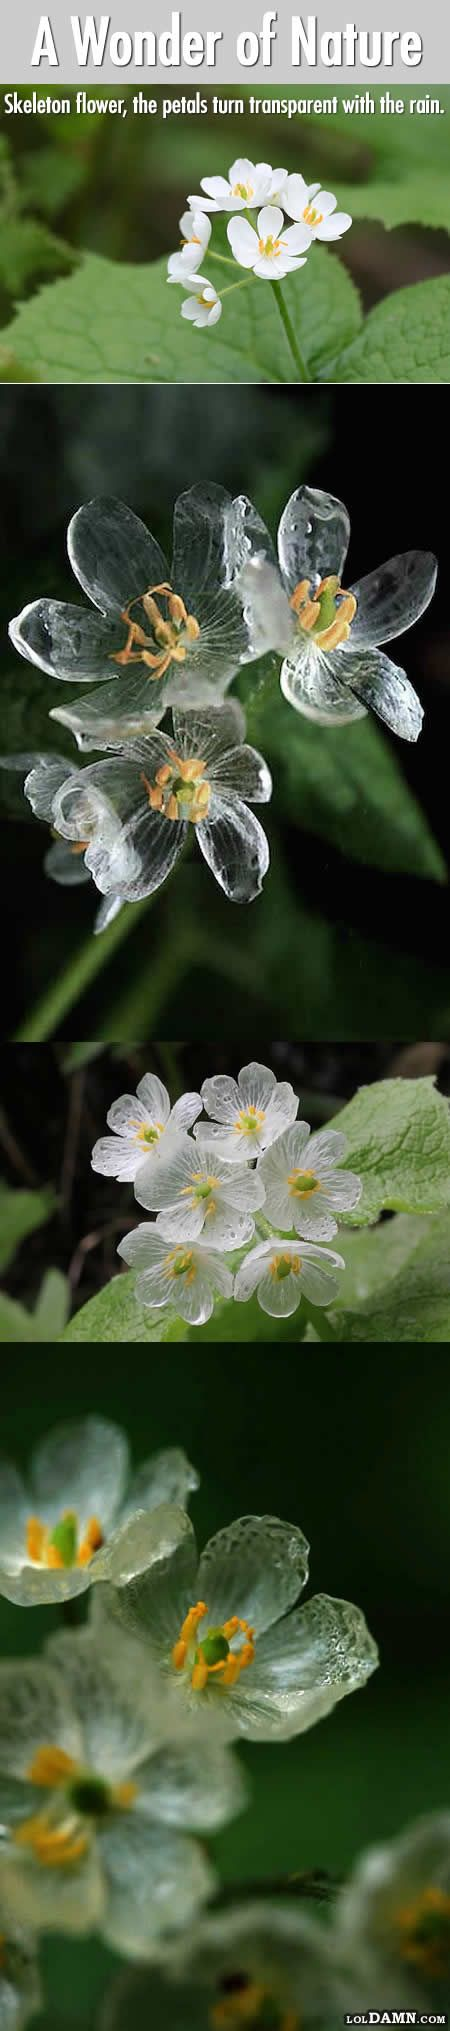 A magic of nature: Flowers turn transparent with rain.